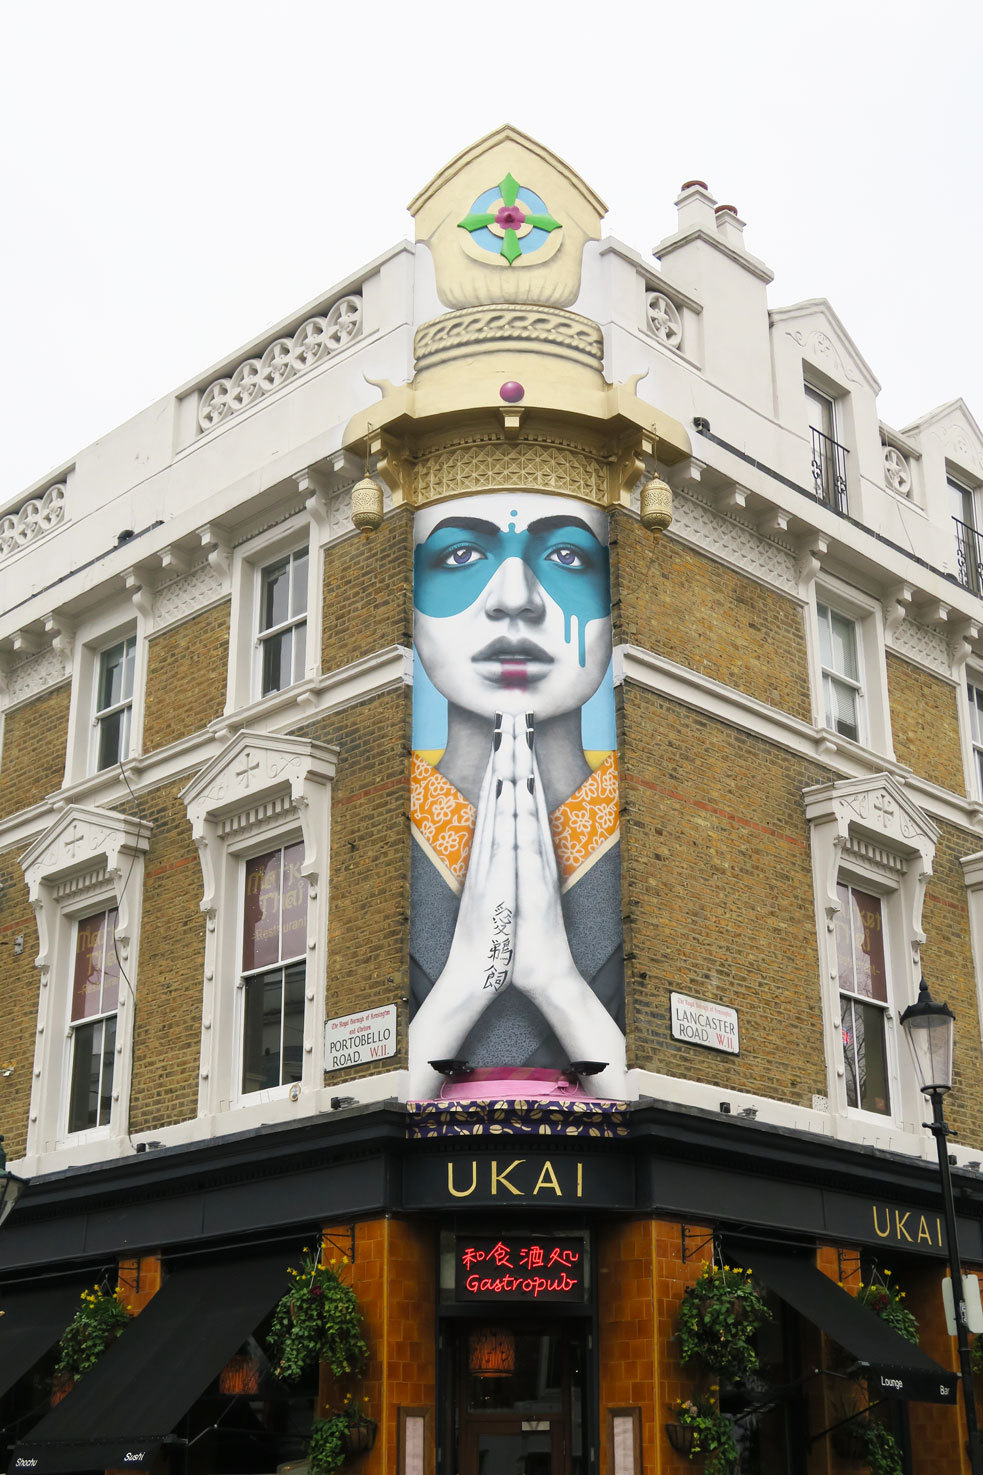 notting hill ukai shop with mural